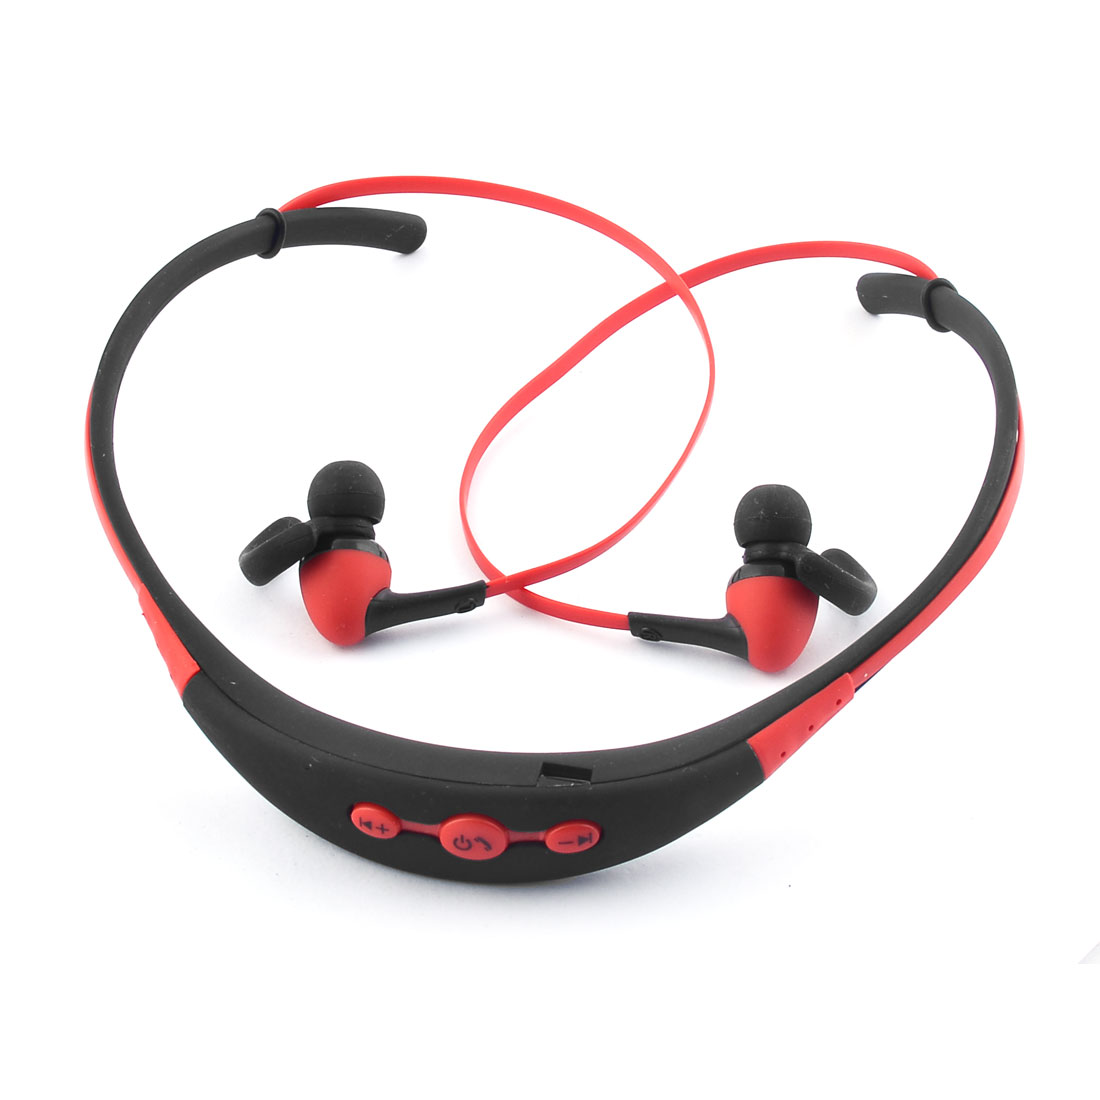 Sport bluetooth 4.1 Wireless Stereo Handfree Neckband Type Earphone Headsets Red